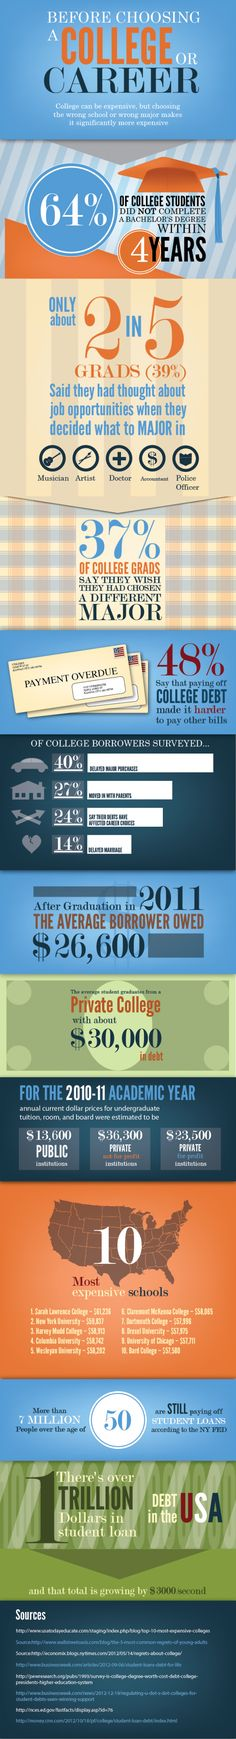 Before Choosing a College or Career #INFOGRAPHIC